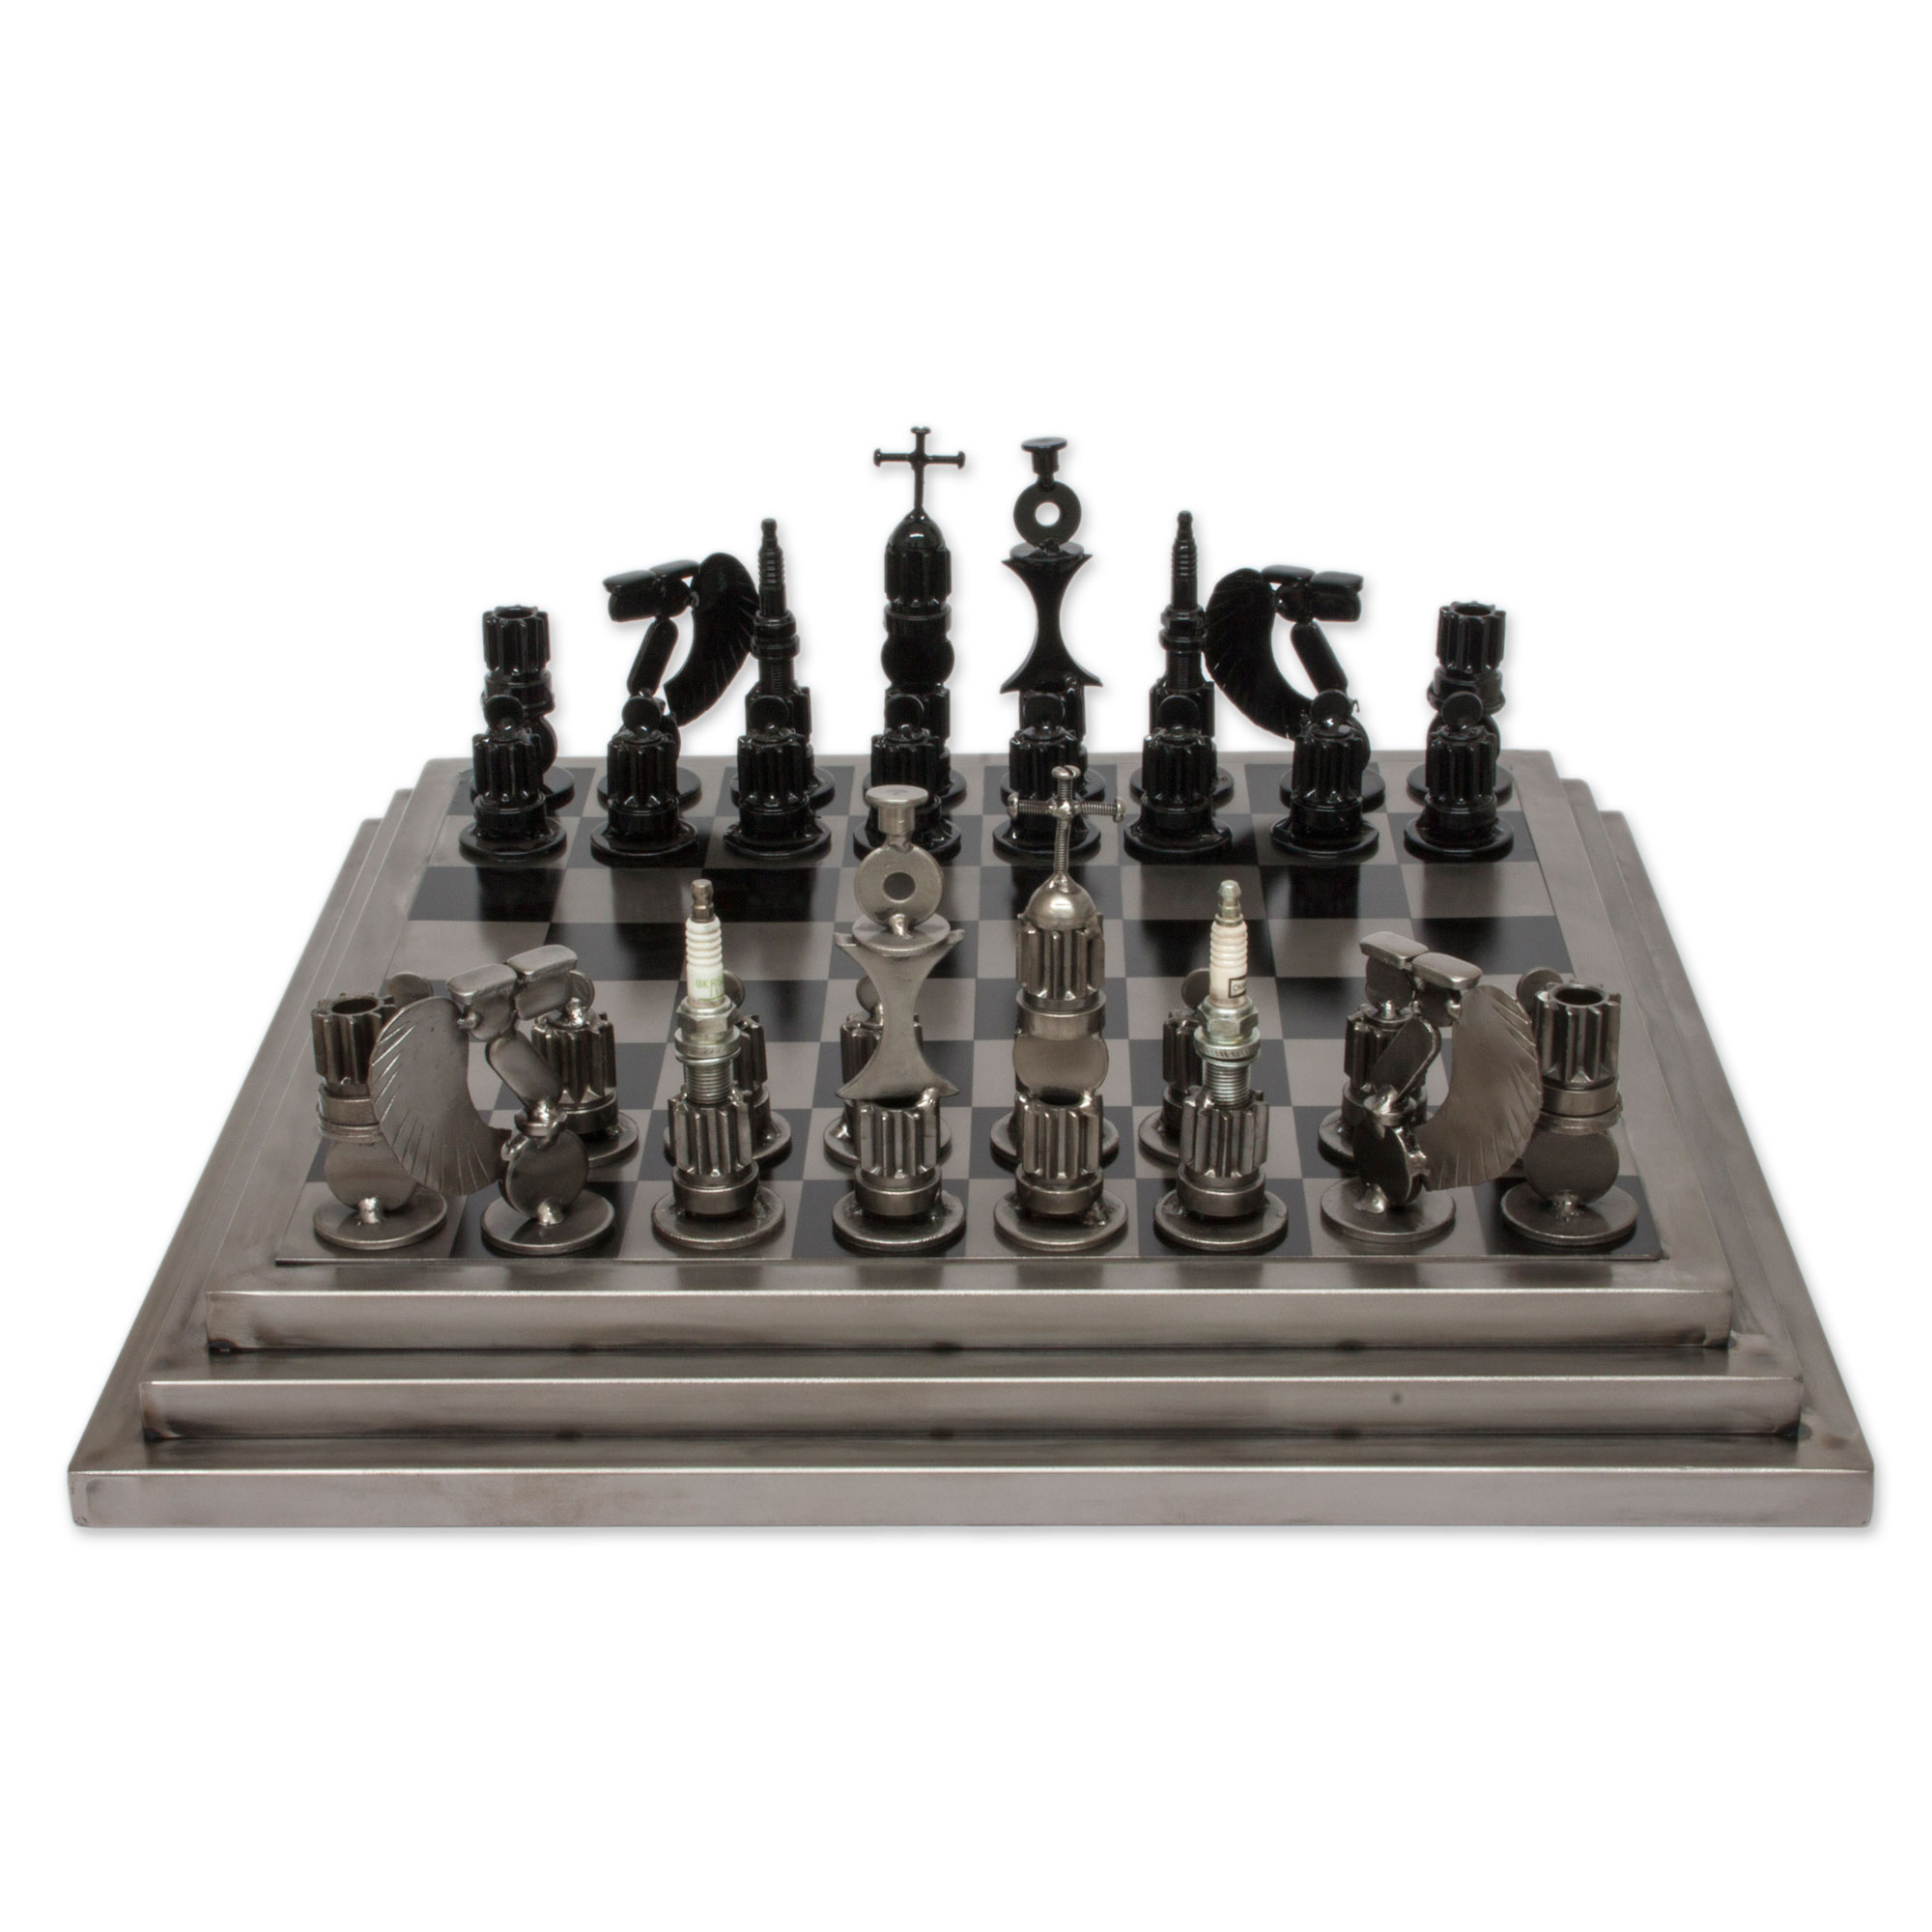 Upcycled auto part chess set, 'Rustic Warriors'